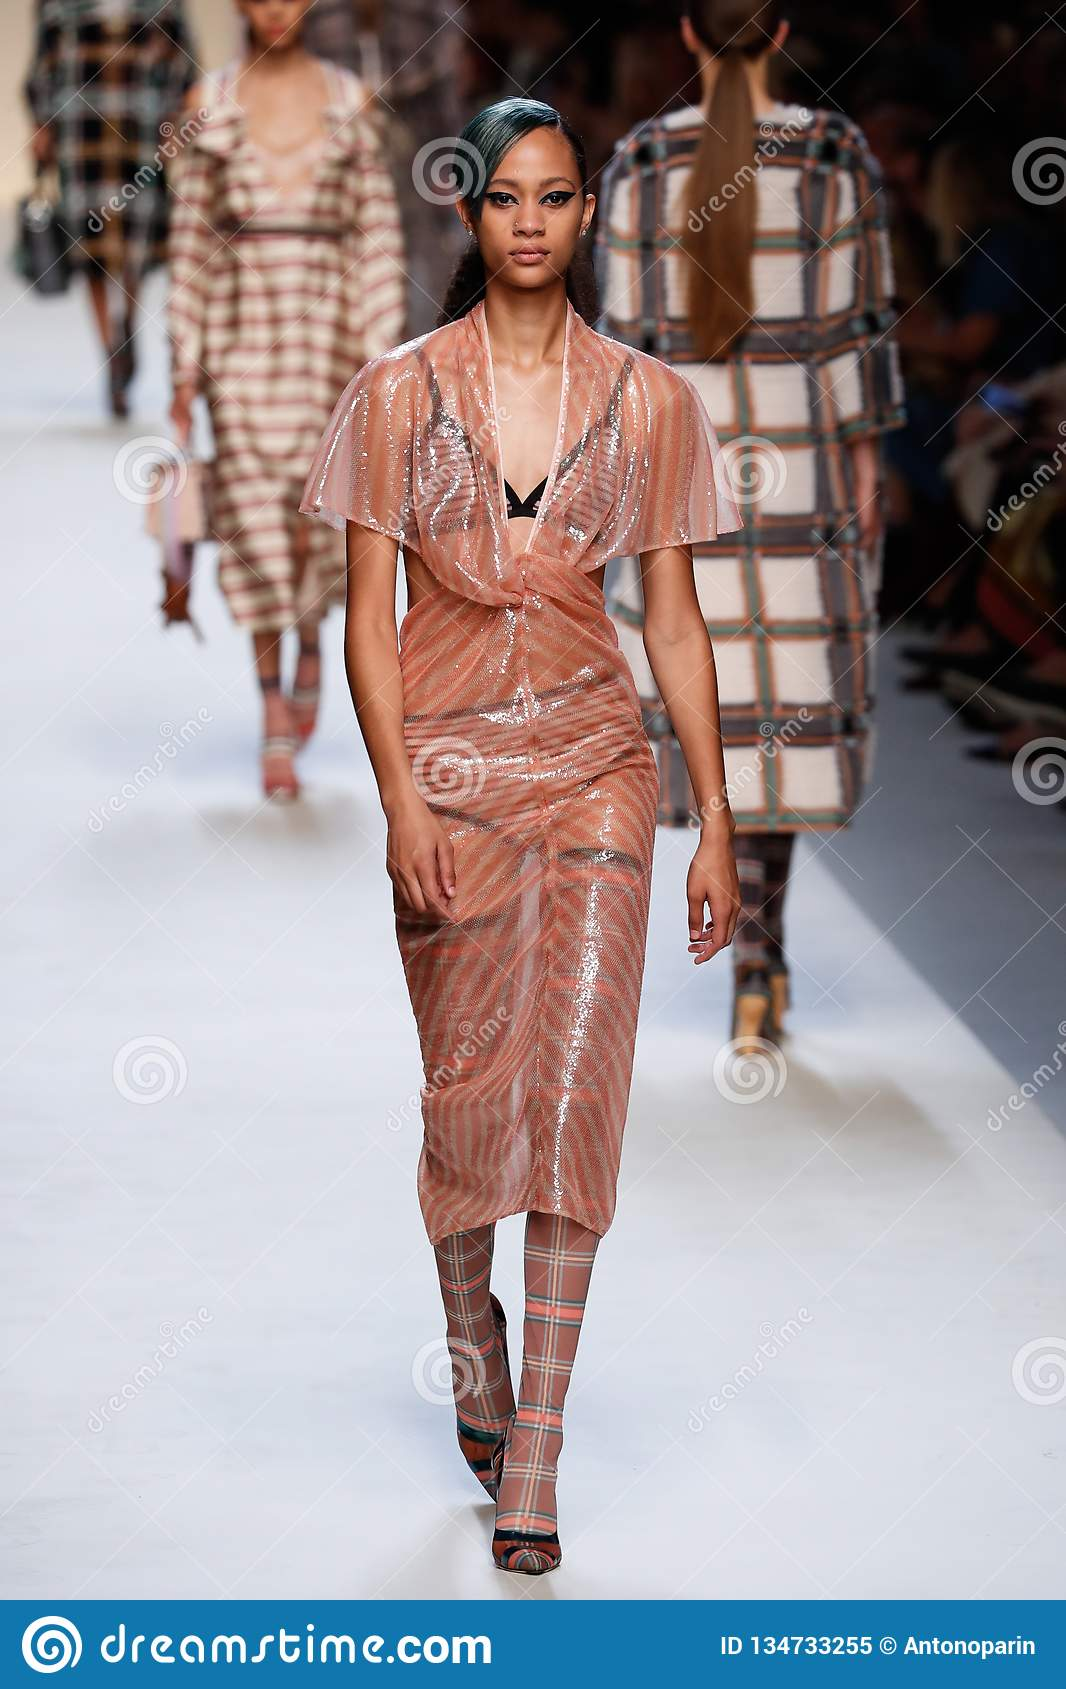 Fashion Collection of the Week: Models Dazzle in Spring